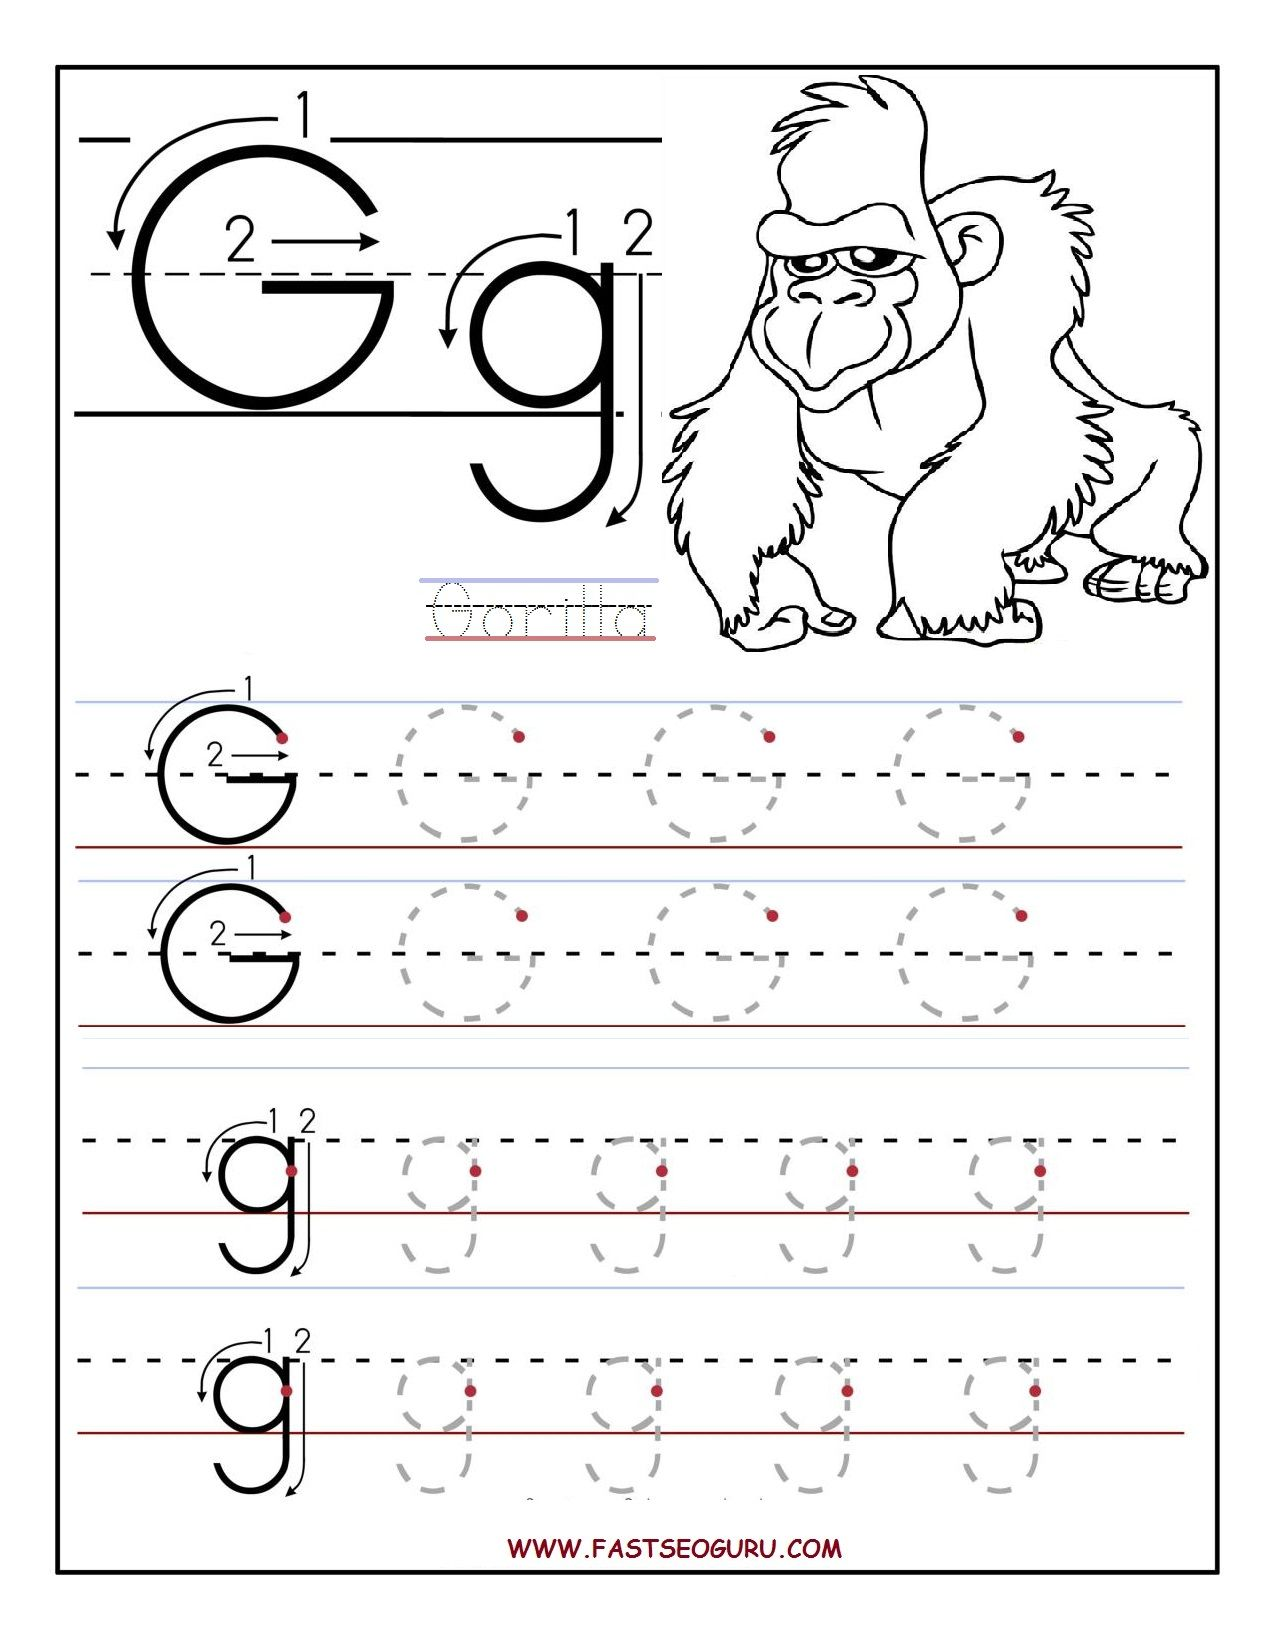 worksheet Letter G Worksheets For Preschoolers worksheets for preschoolers printable letter g tracing preschool